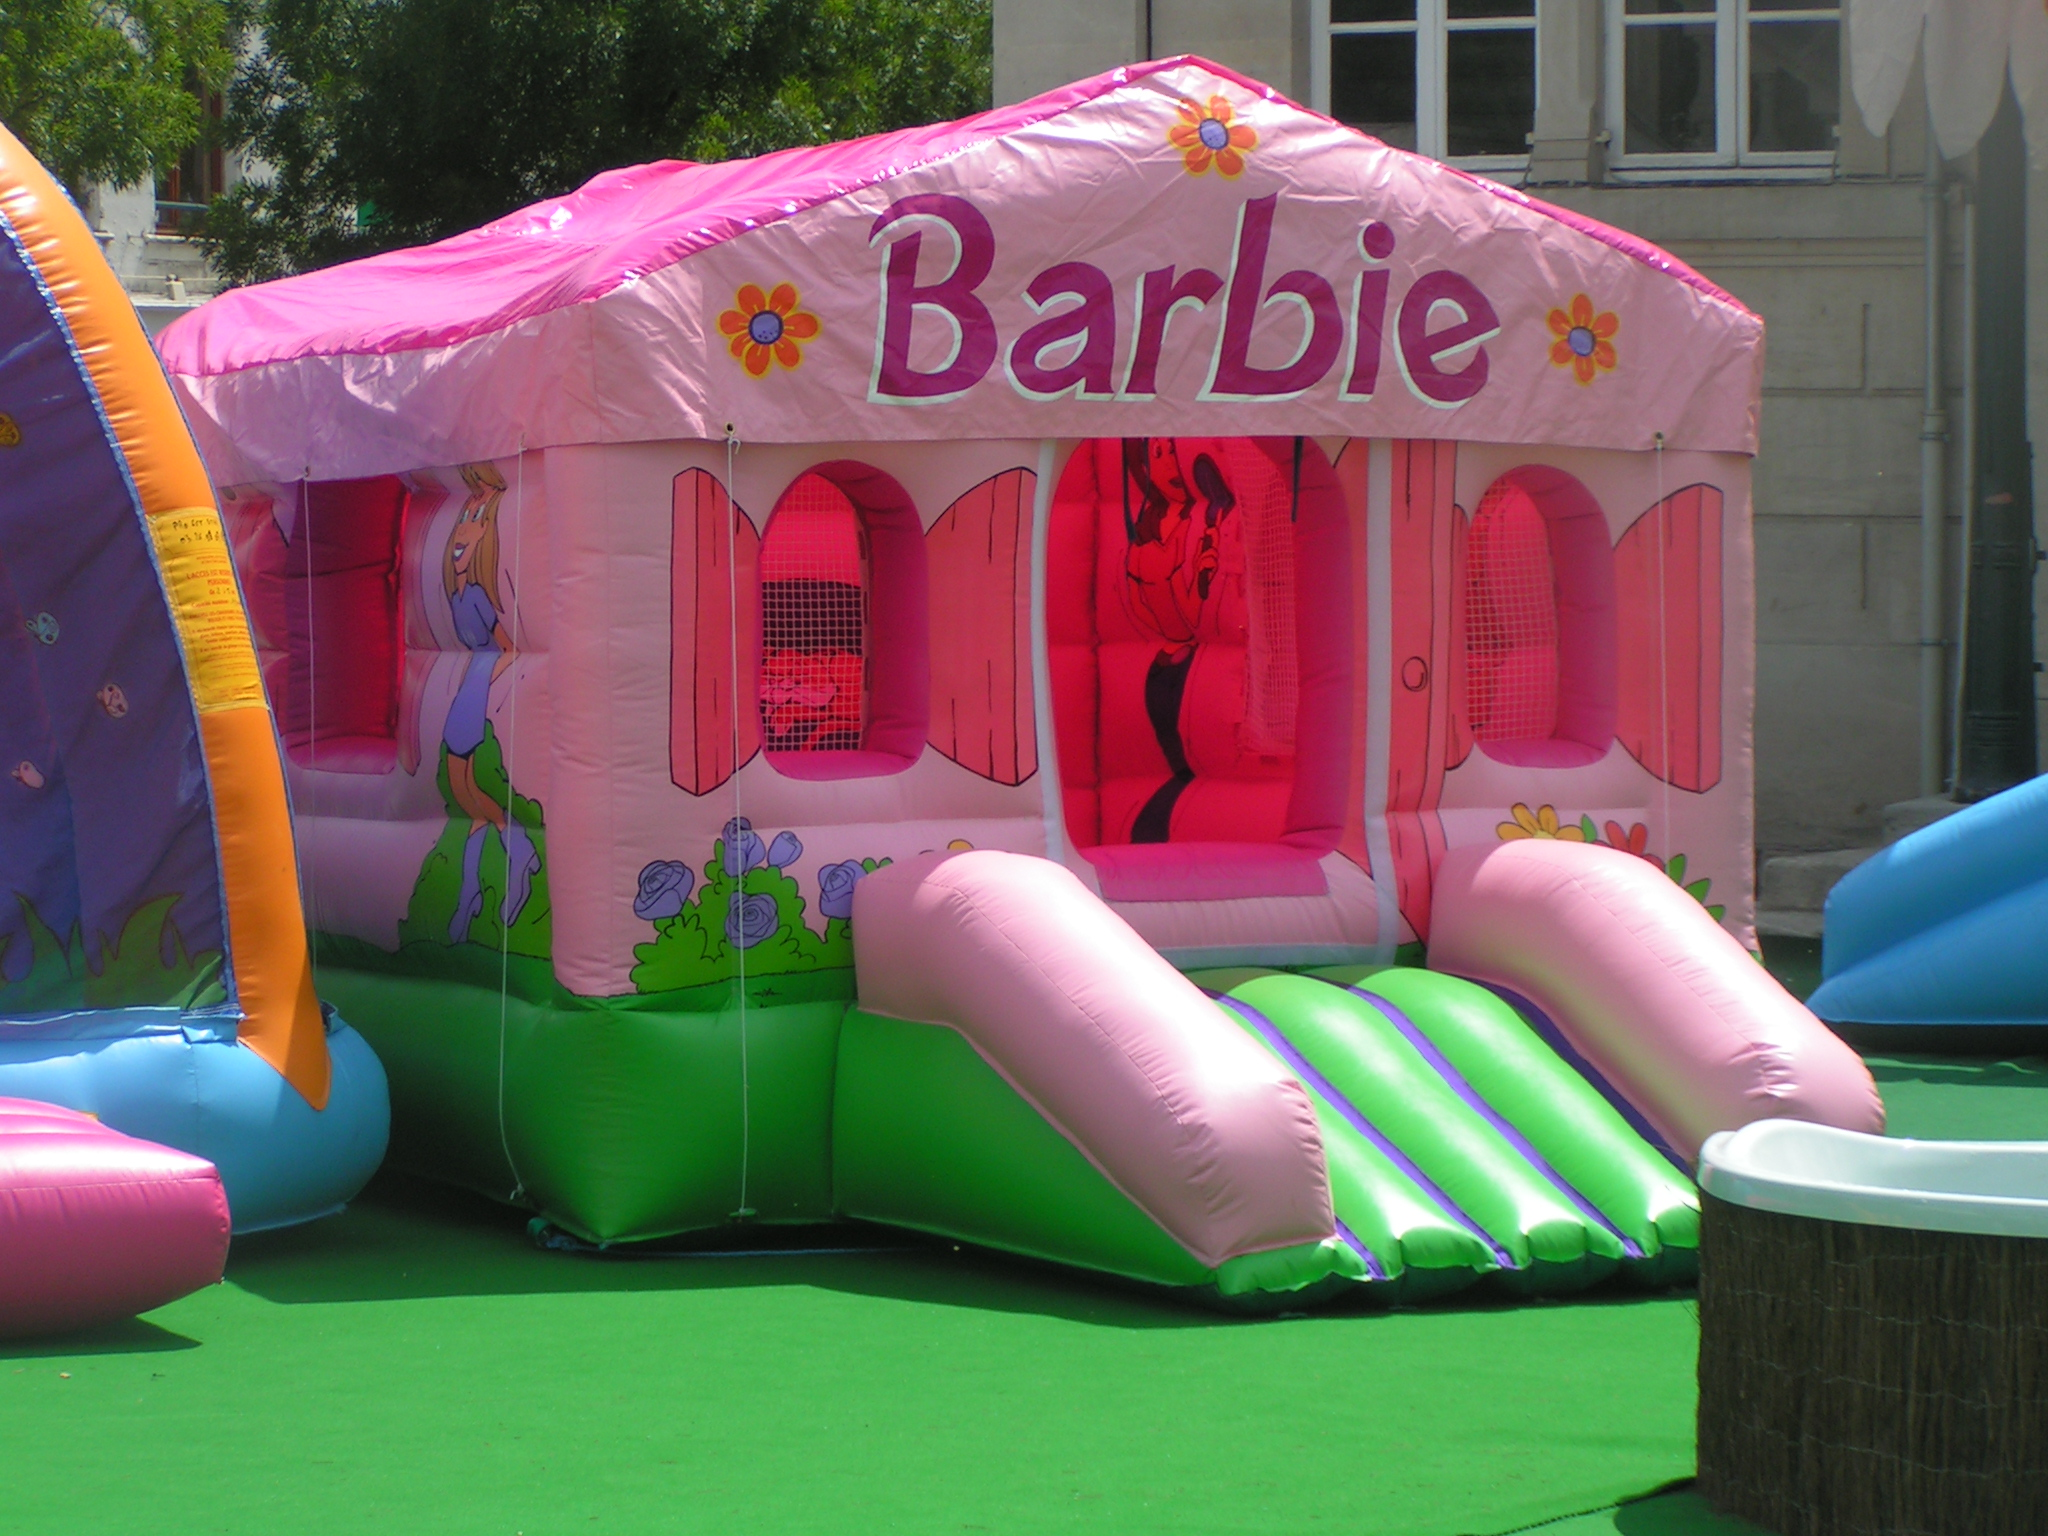 jeu gonflable barbie type chateau gonflable